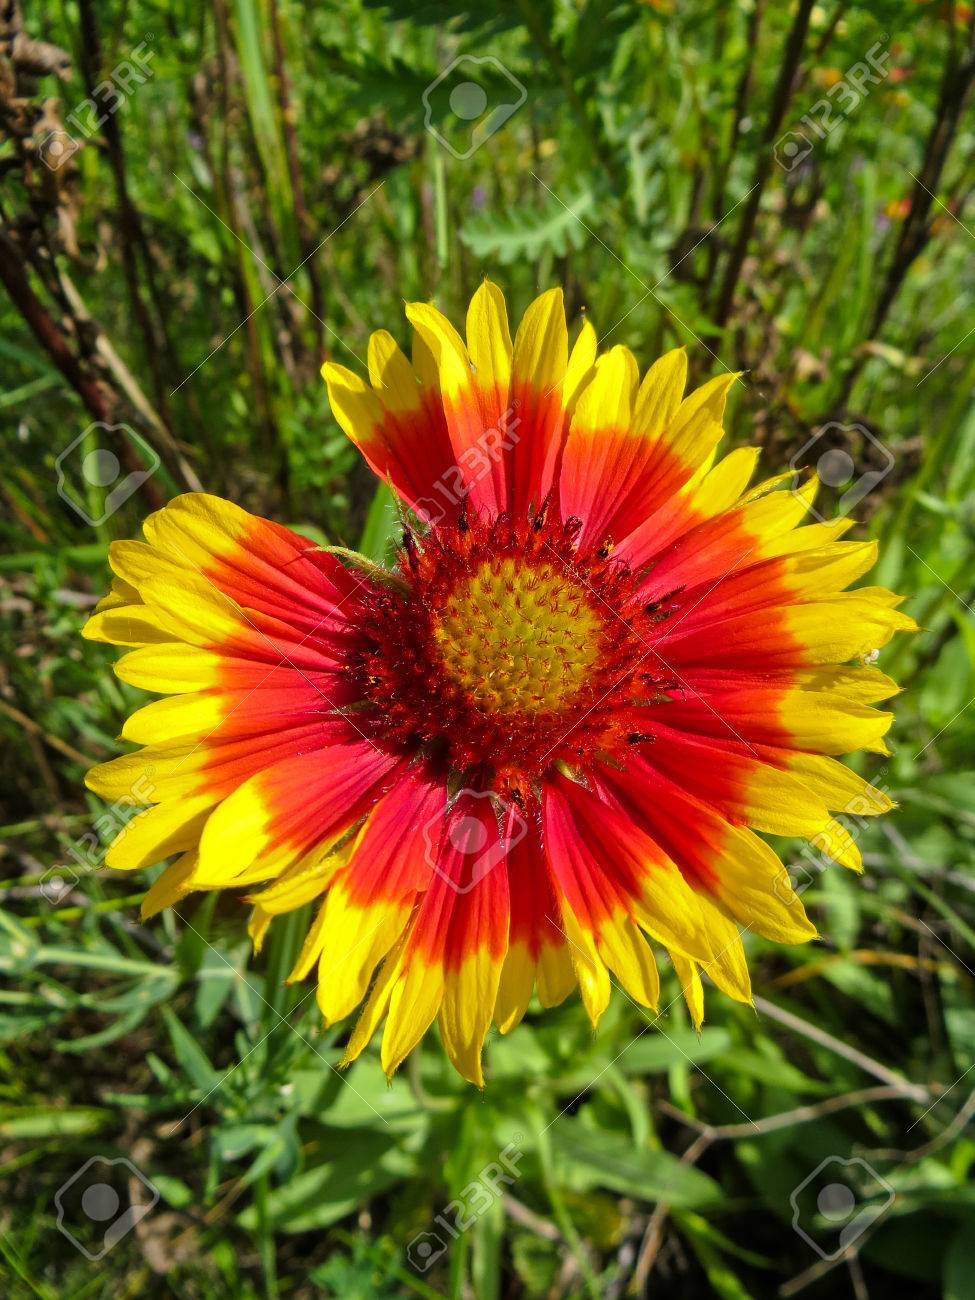 Gaillardia Blanket Flower In The Garden Stock Photo Picture And